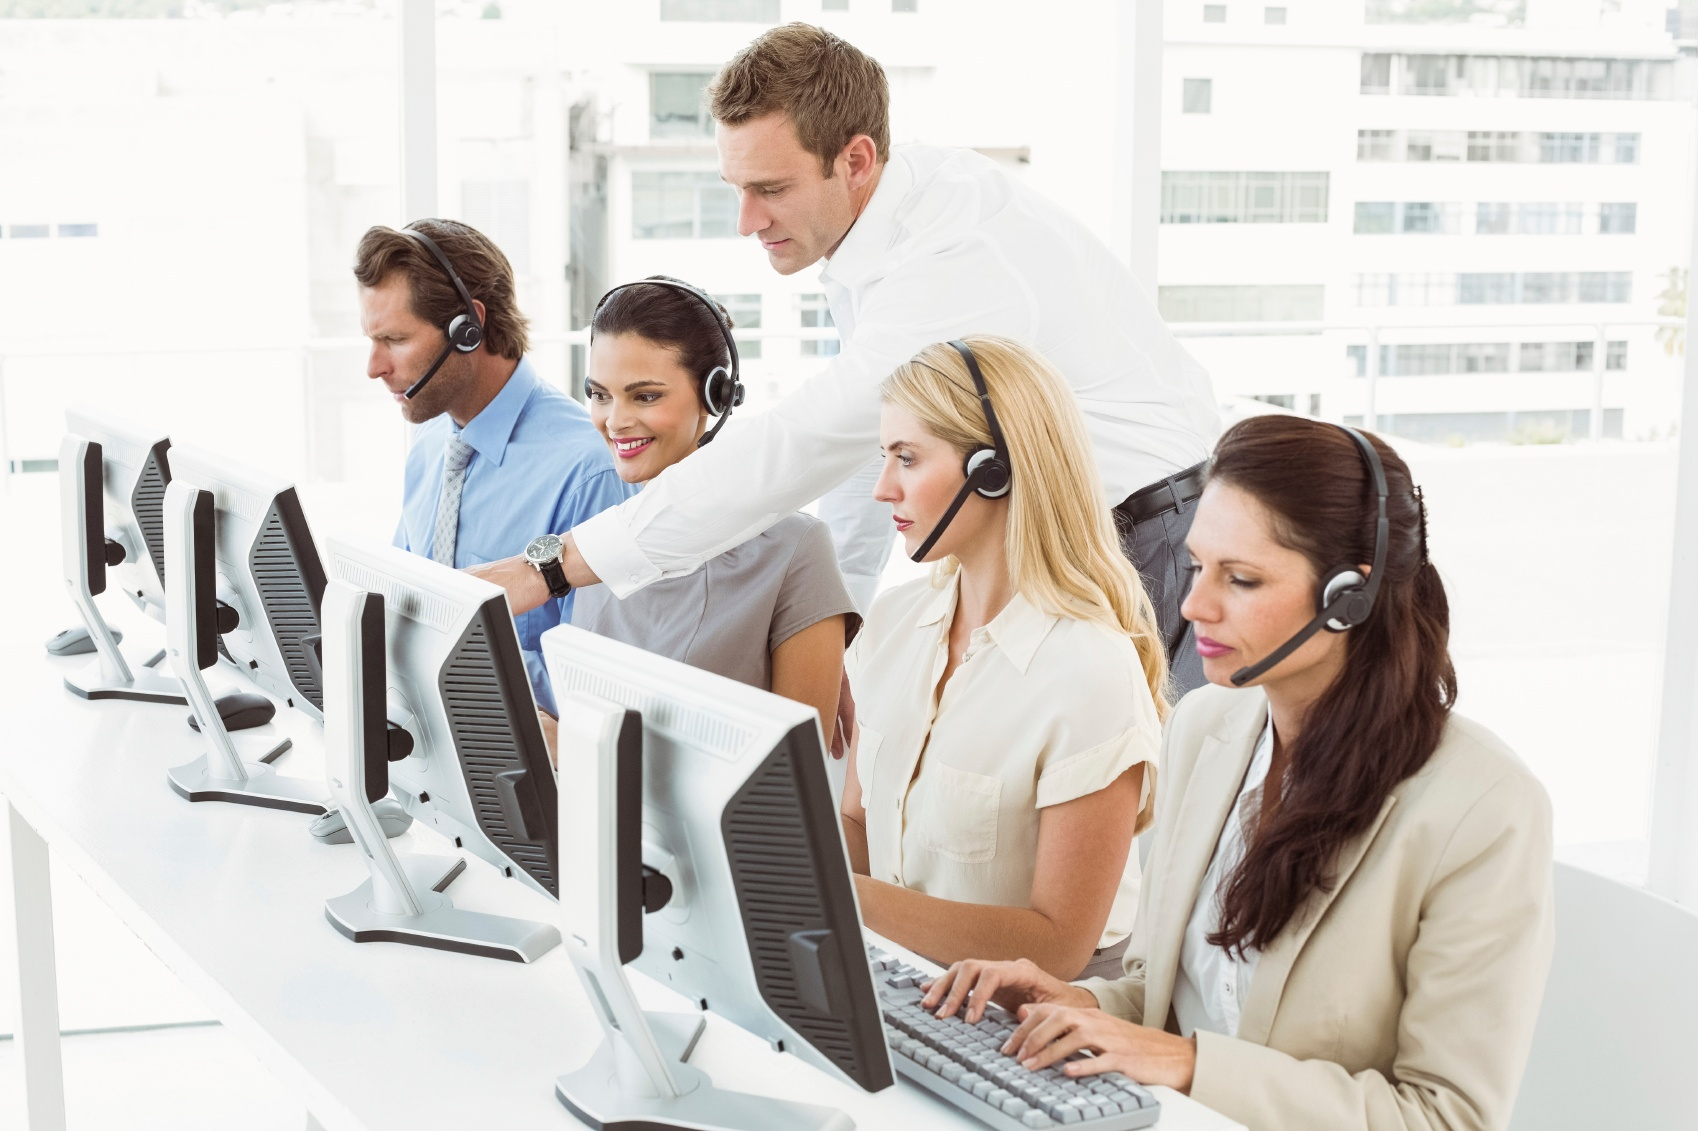 Call Center Monitoring Can Help You Save AND Make Money. Here's How.